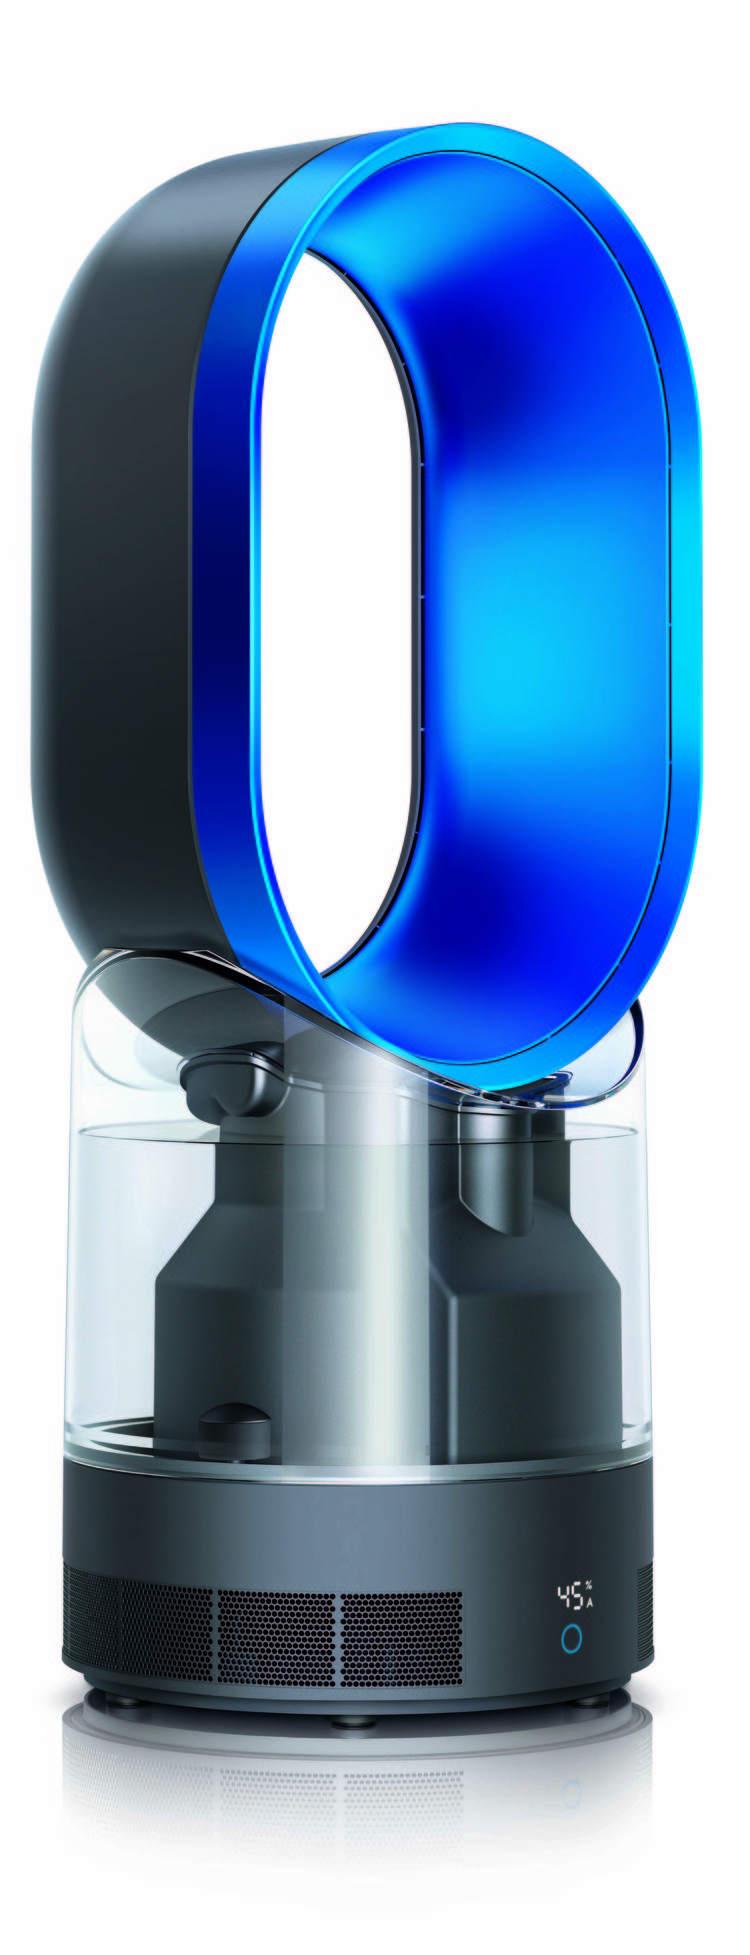 Dyson Hygienic Mist Humidifier in blue